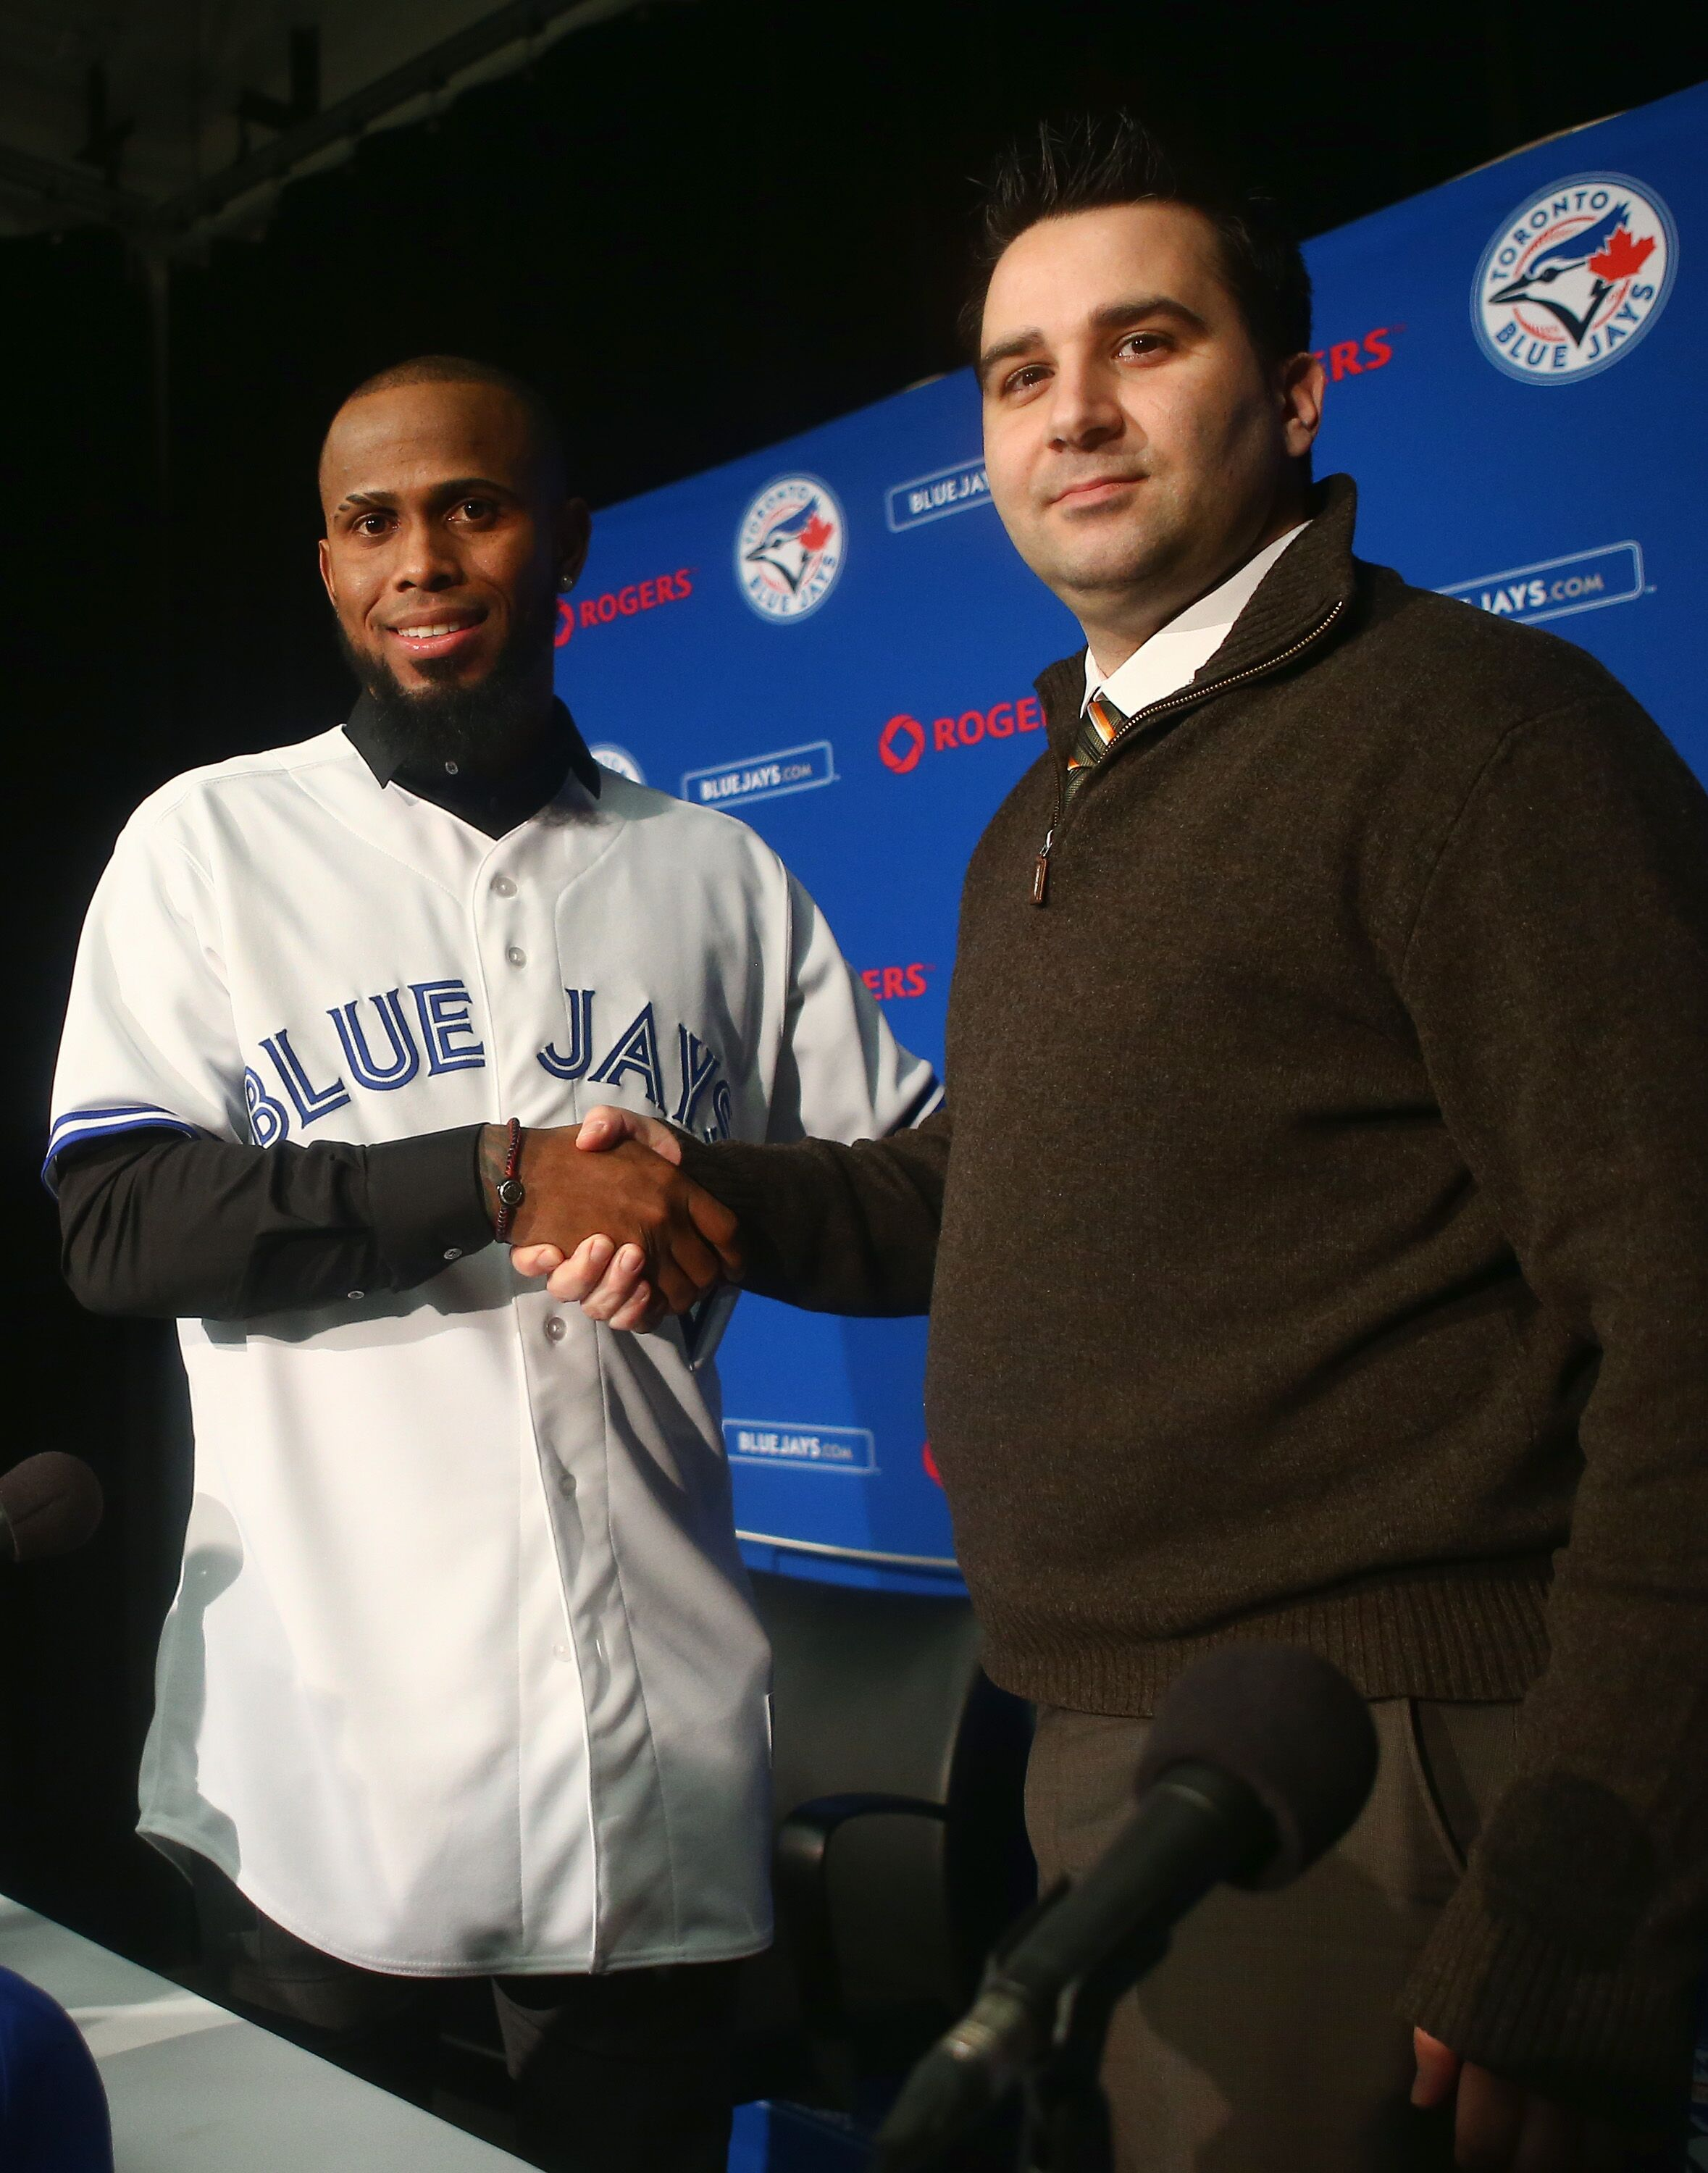 159639679-toronto-blue-jays-introduce-jose-reyes.jpg